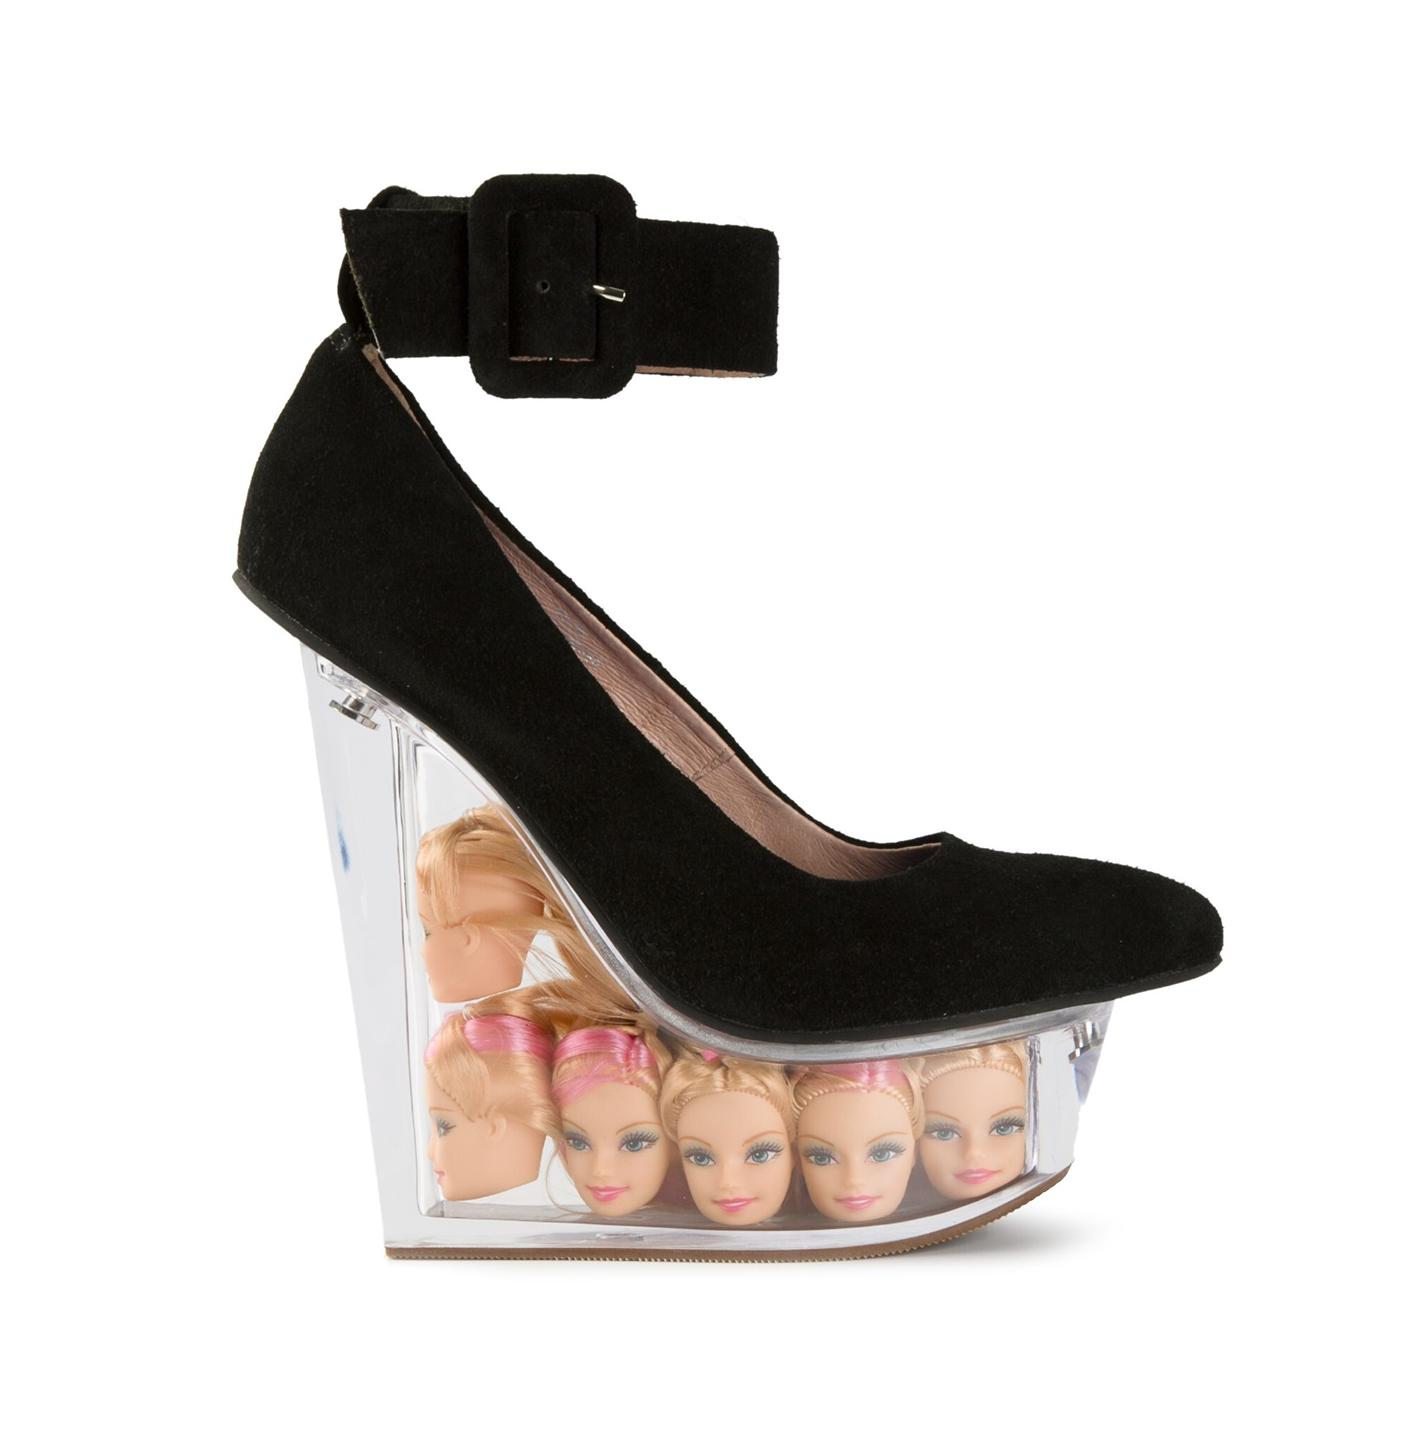 Jeffrey-Campbell-Black-Suede-Killa-Barbie-Doll-Head-Platform-Wedge